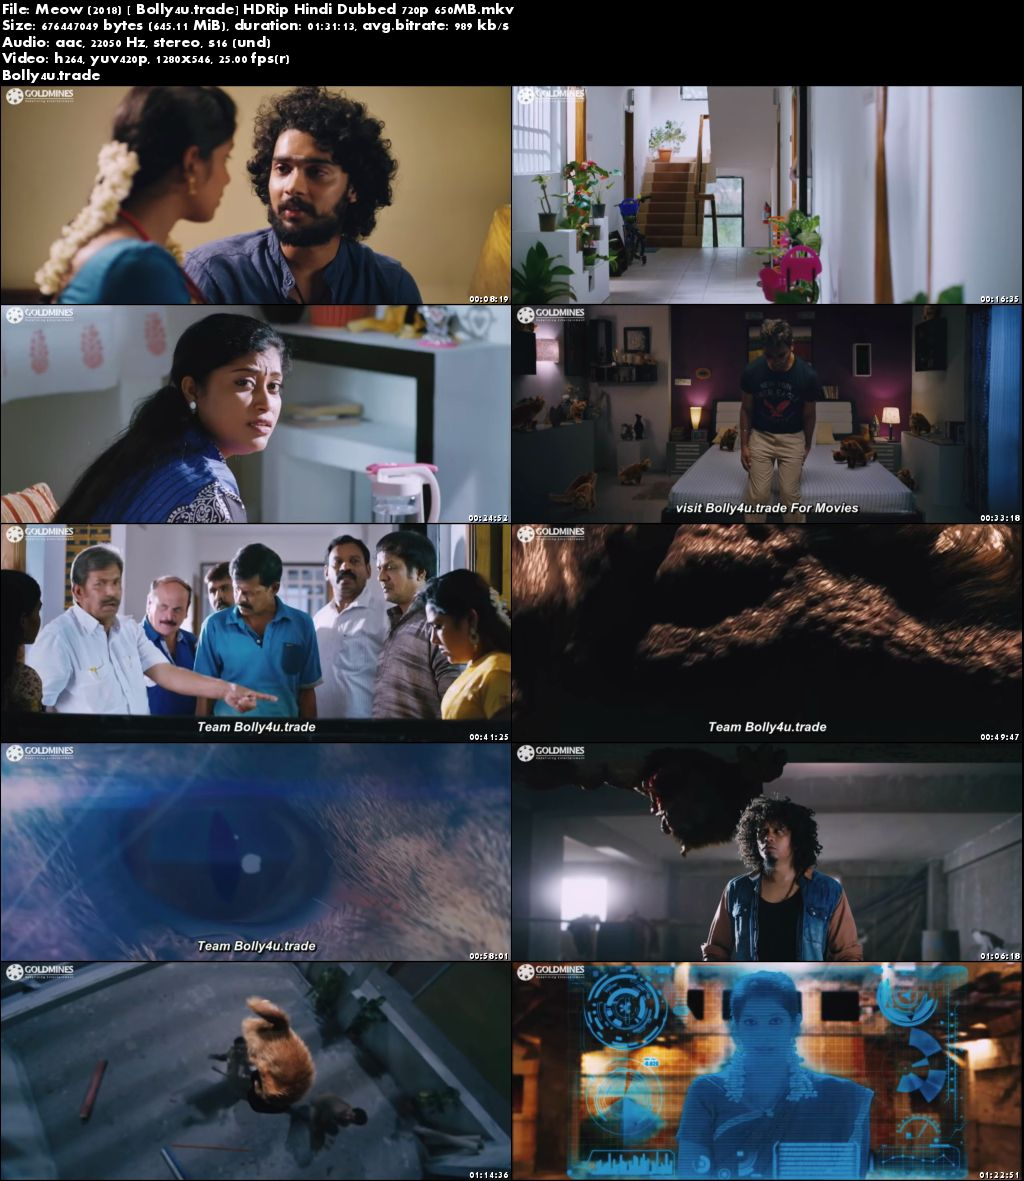 Meow 2018 HDRip 650Mb Full Hindi Dubbed Movie Download 720p